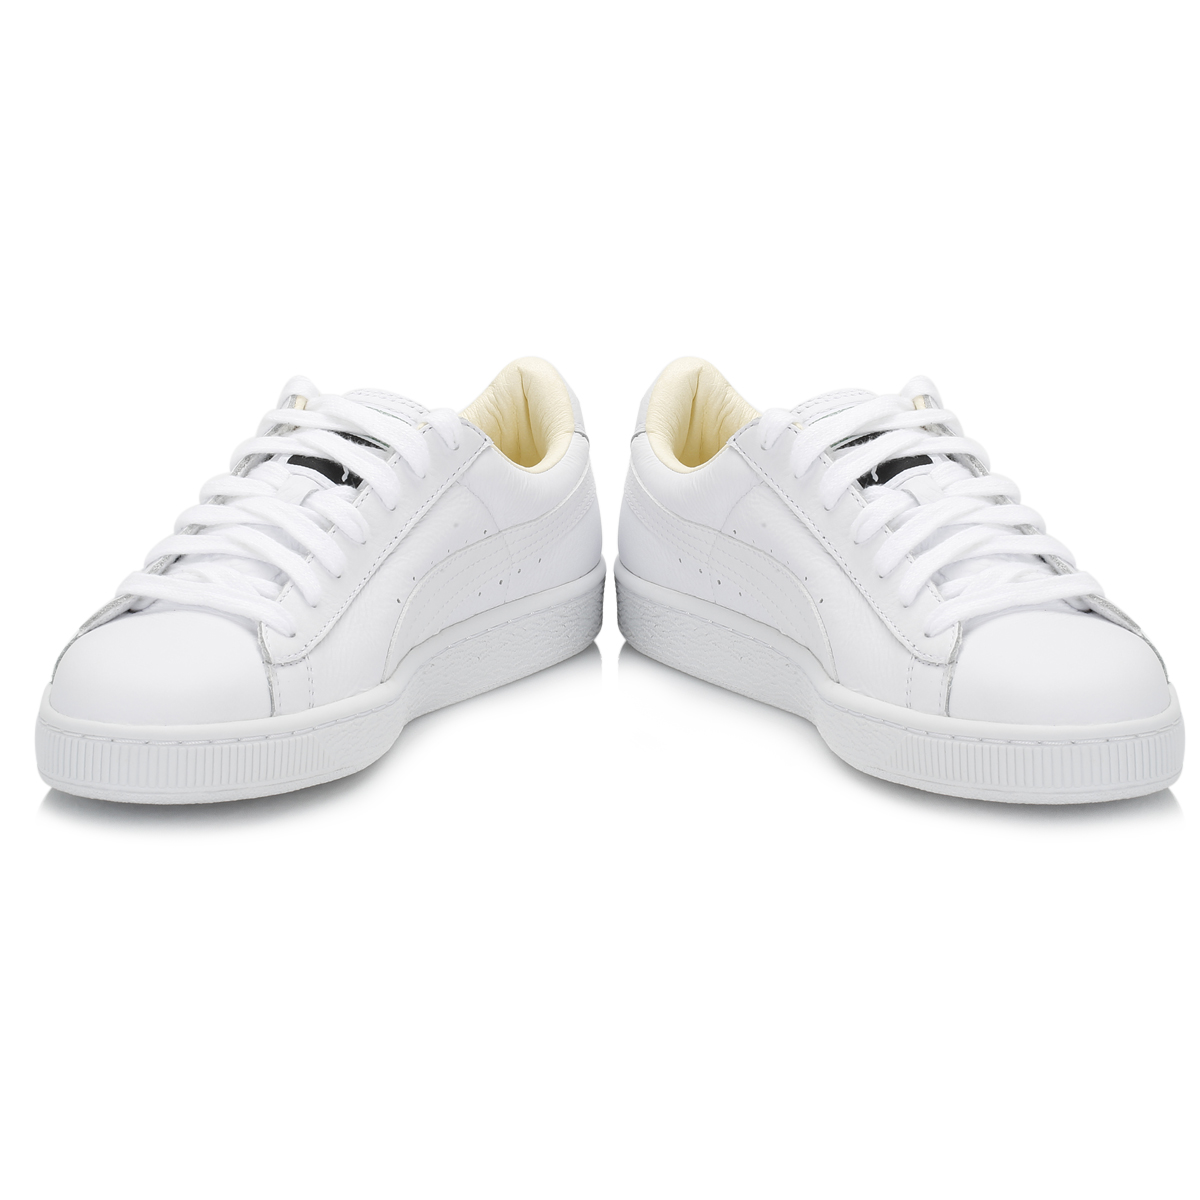 PUMA Unisex White Basket Classic Leather Trainers Lace Up Sport Casual Shoes